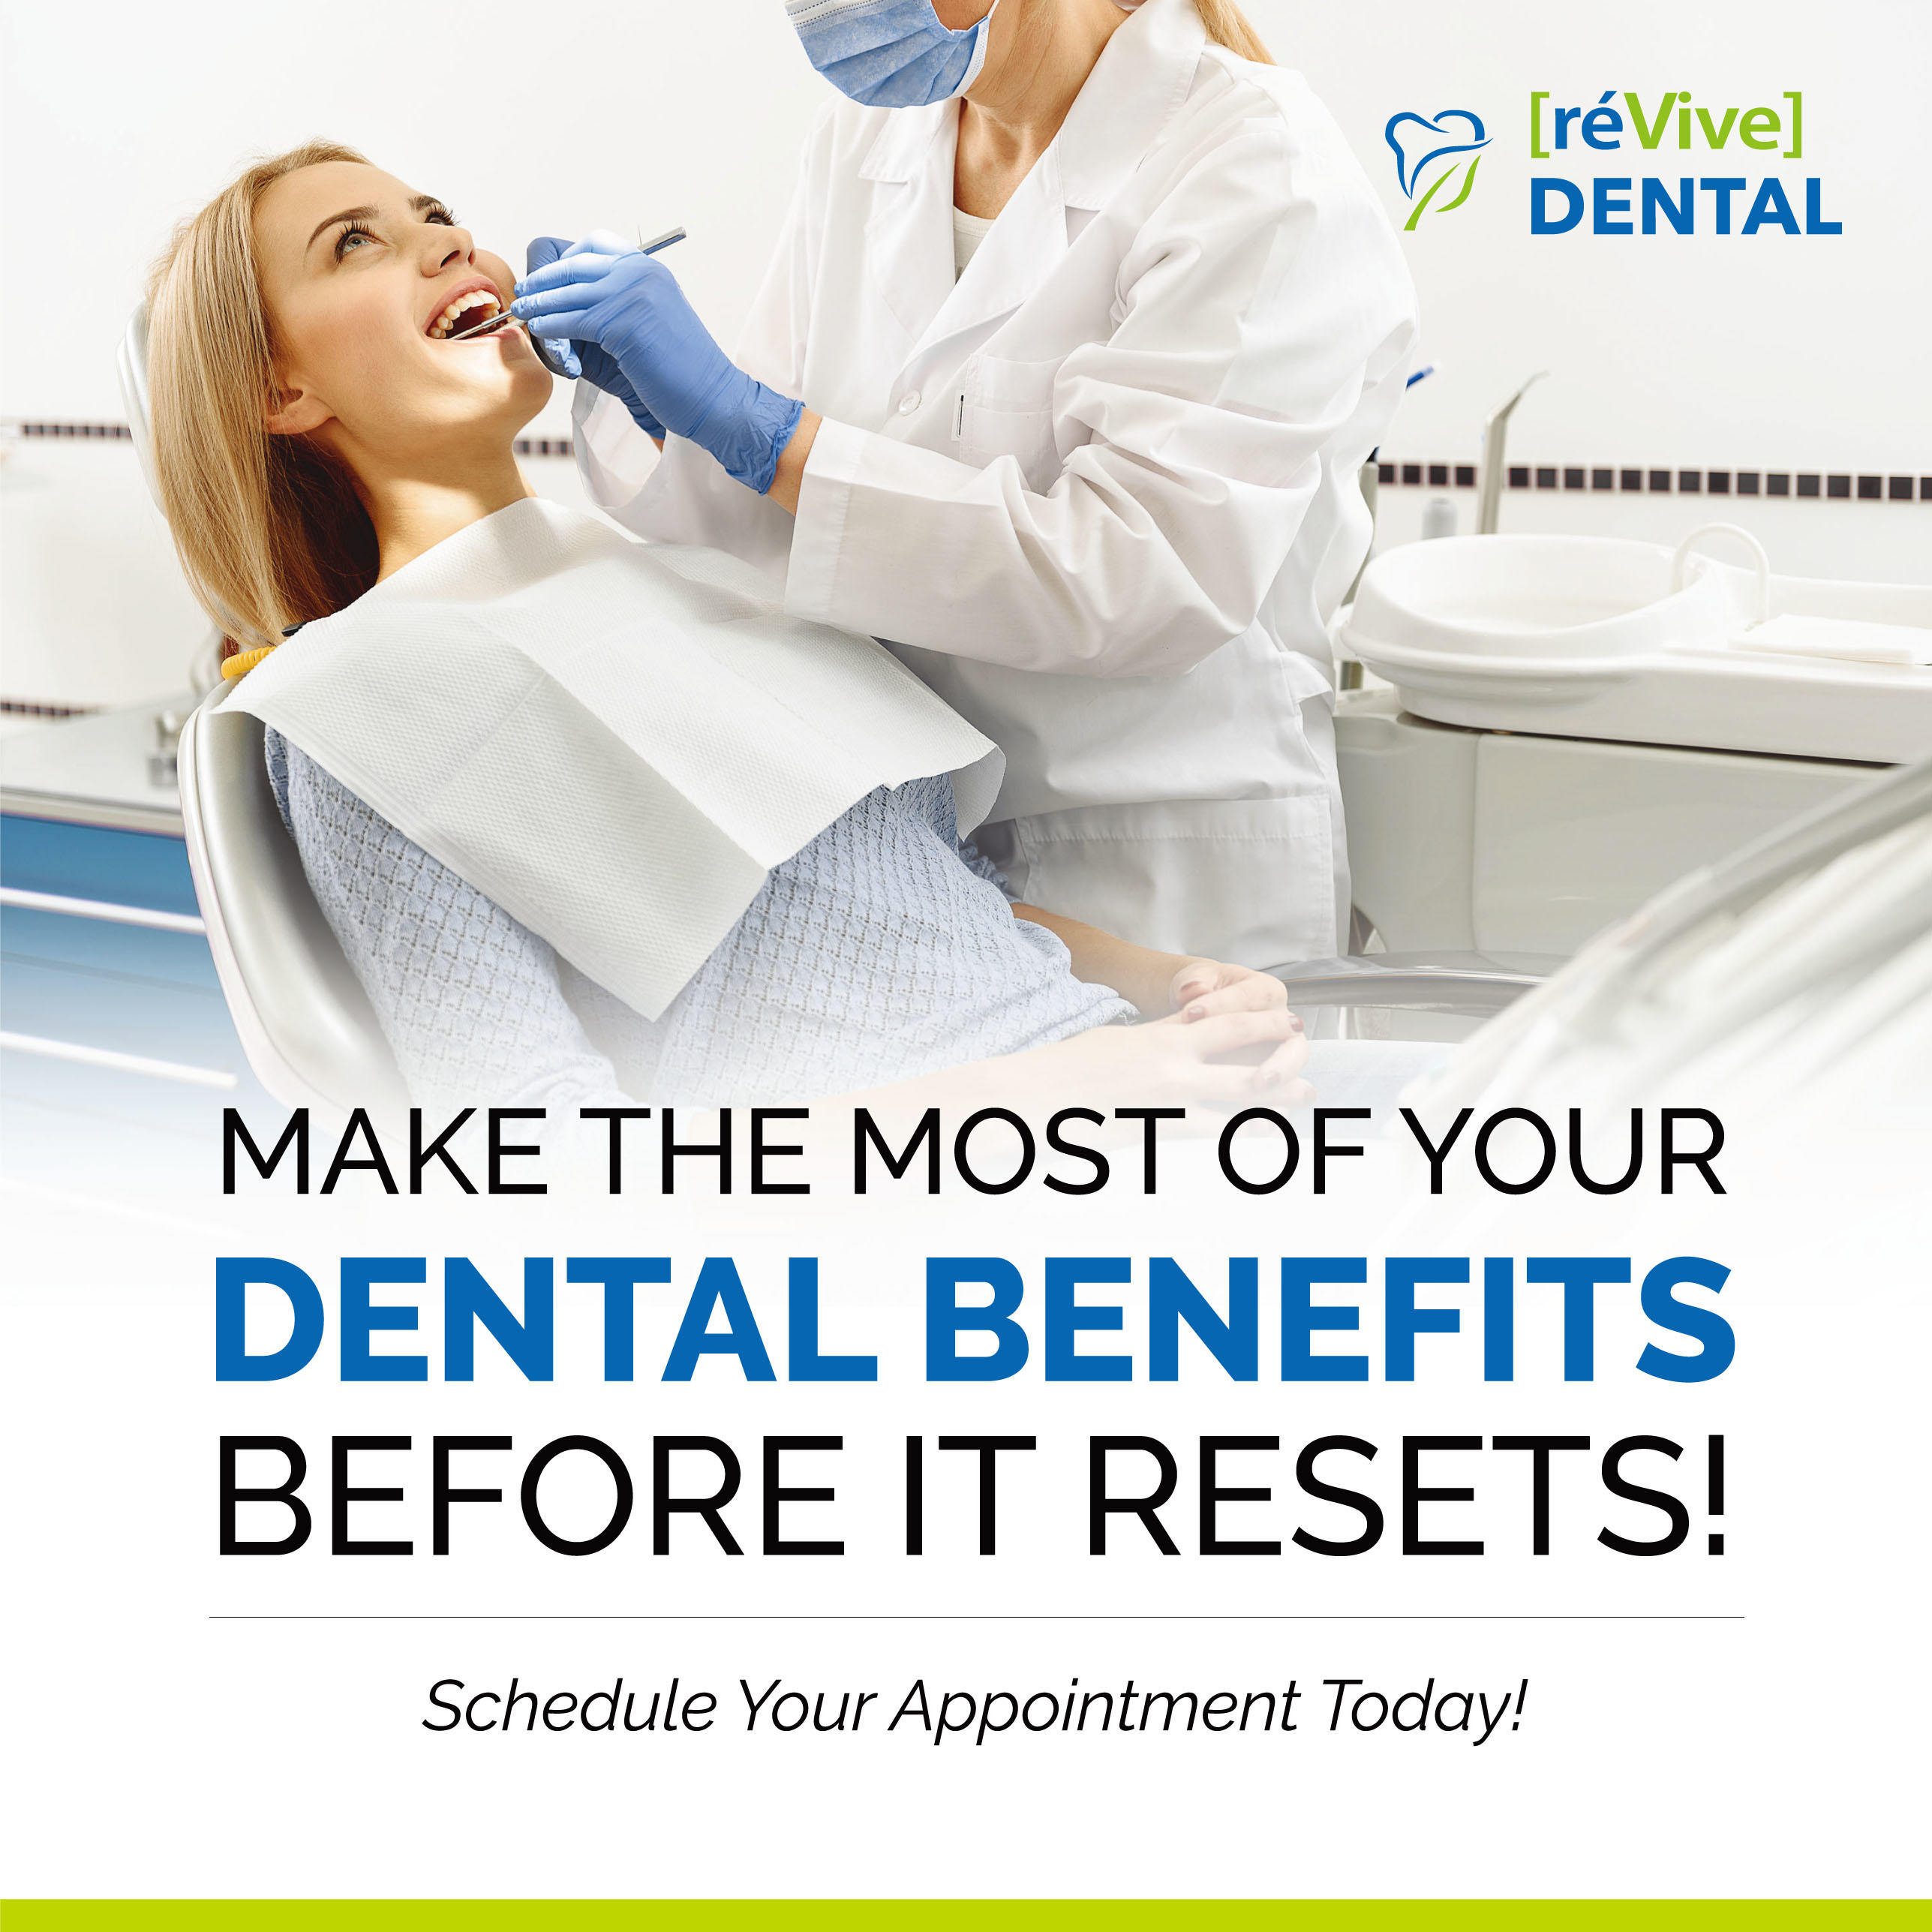 Revive Dental Medicaid Family, Cosmetic Emergency Dentist image 1